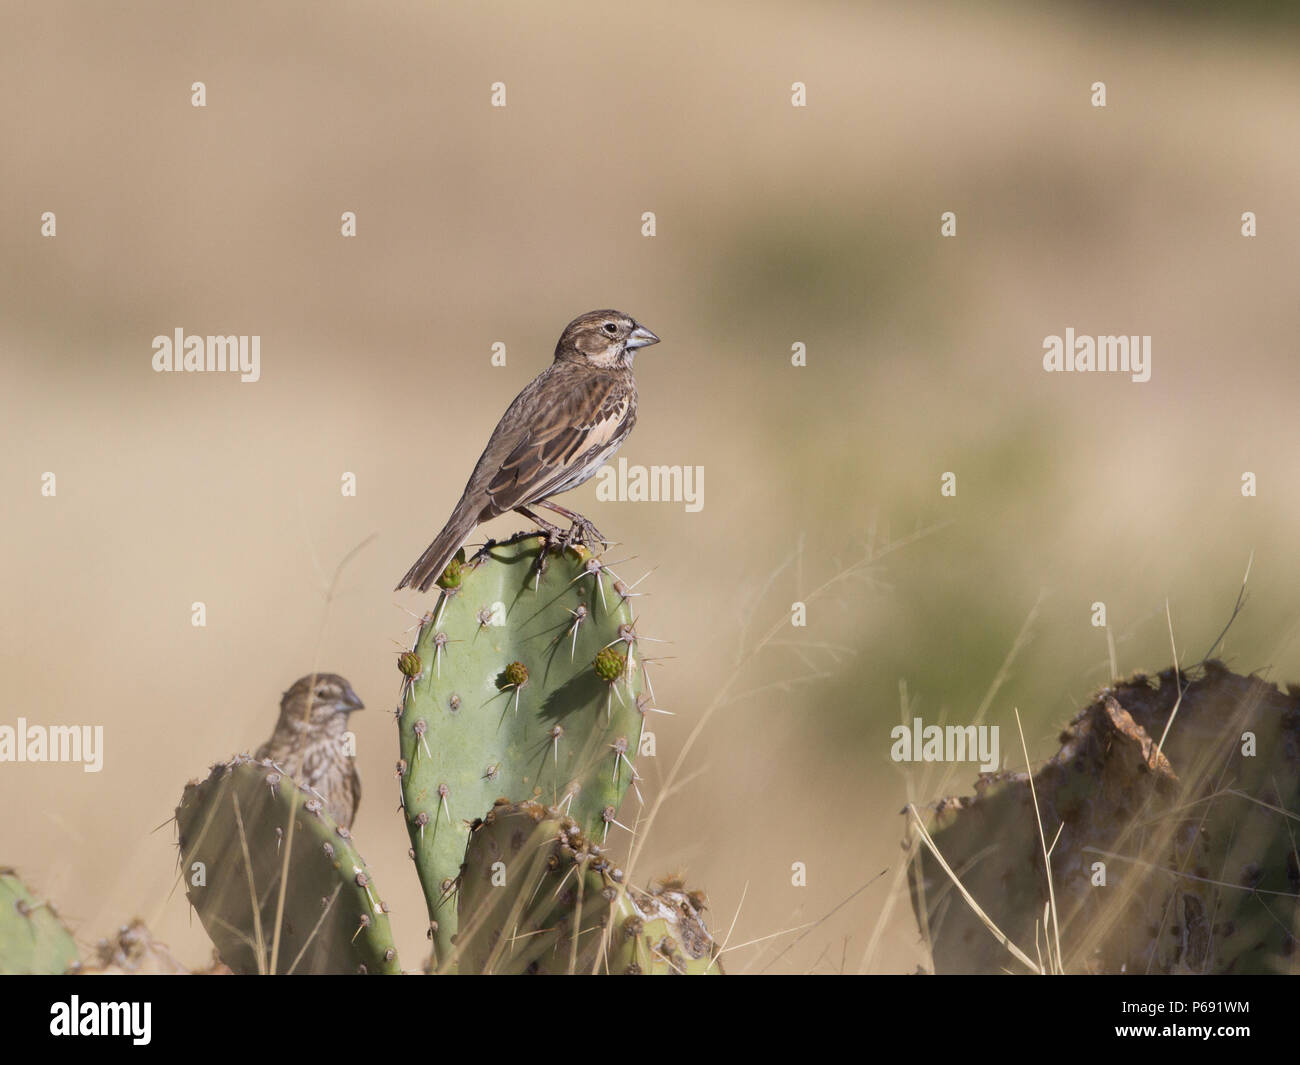 A lark bunting on a prickly pear cactus in southern Arizona, USA. - Stock Image